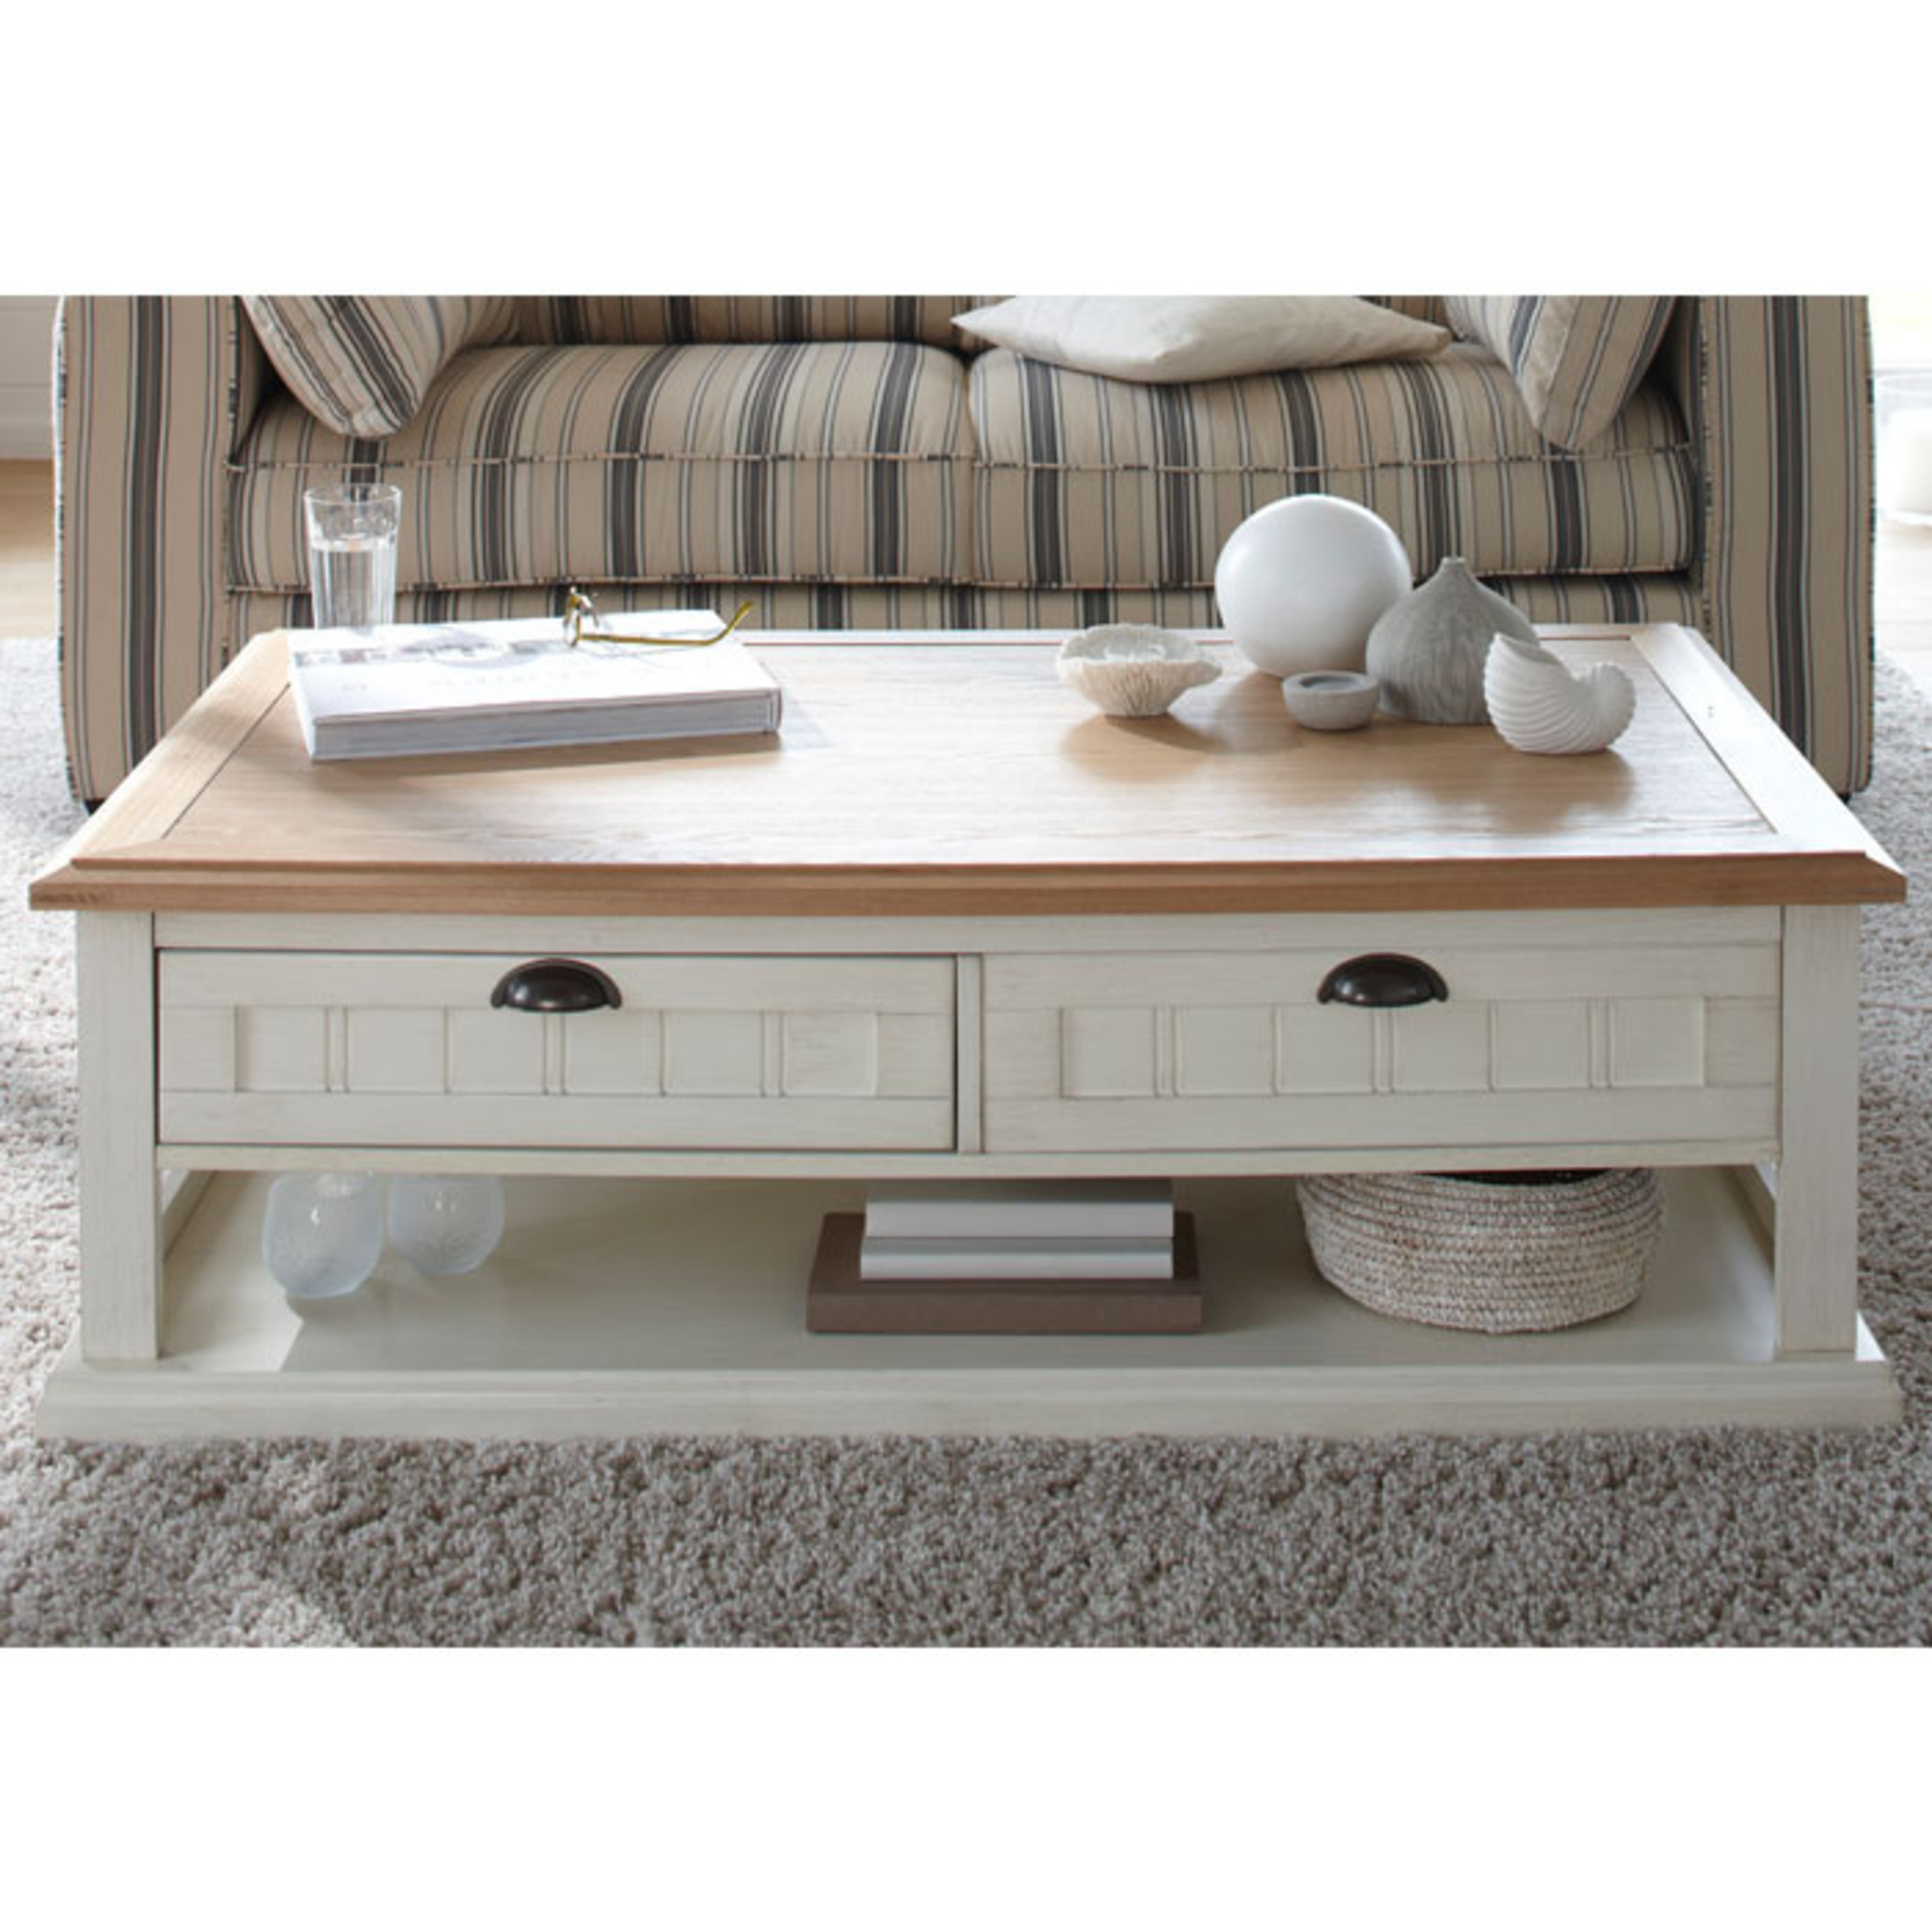 Table basse bois blanc vieilli table de lit - Table basse bois blanc ...